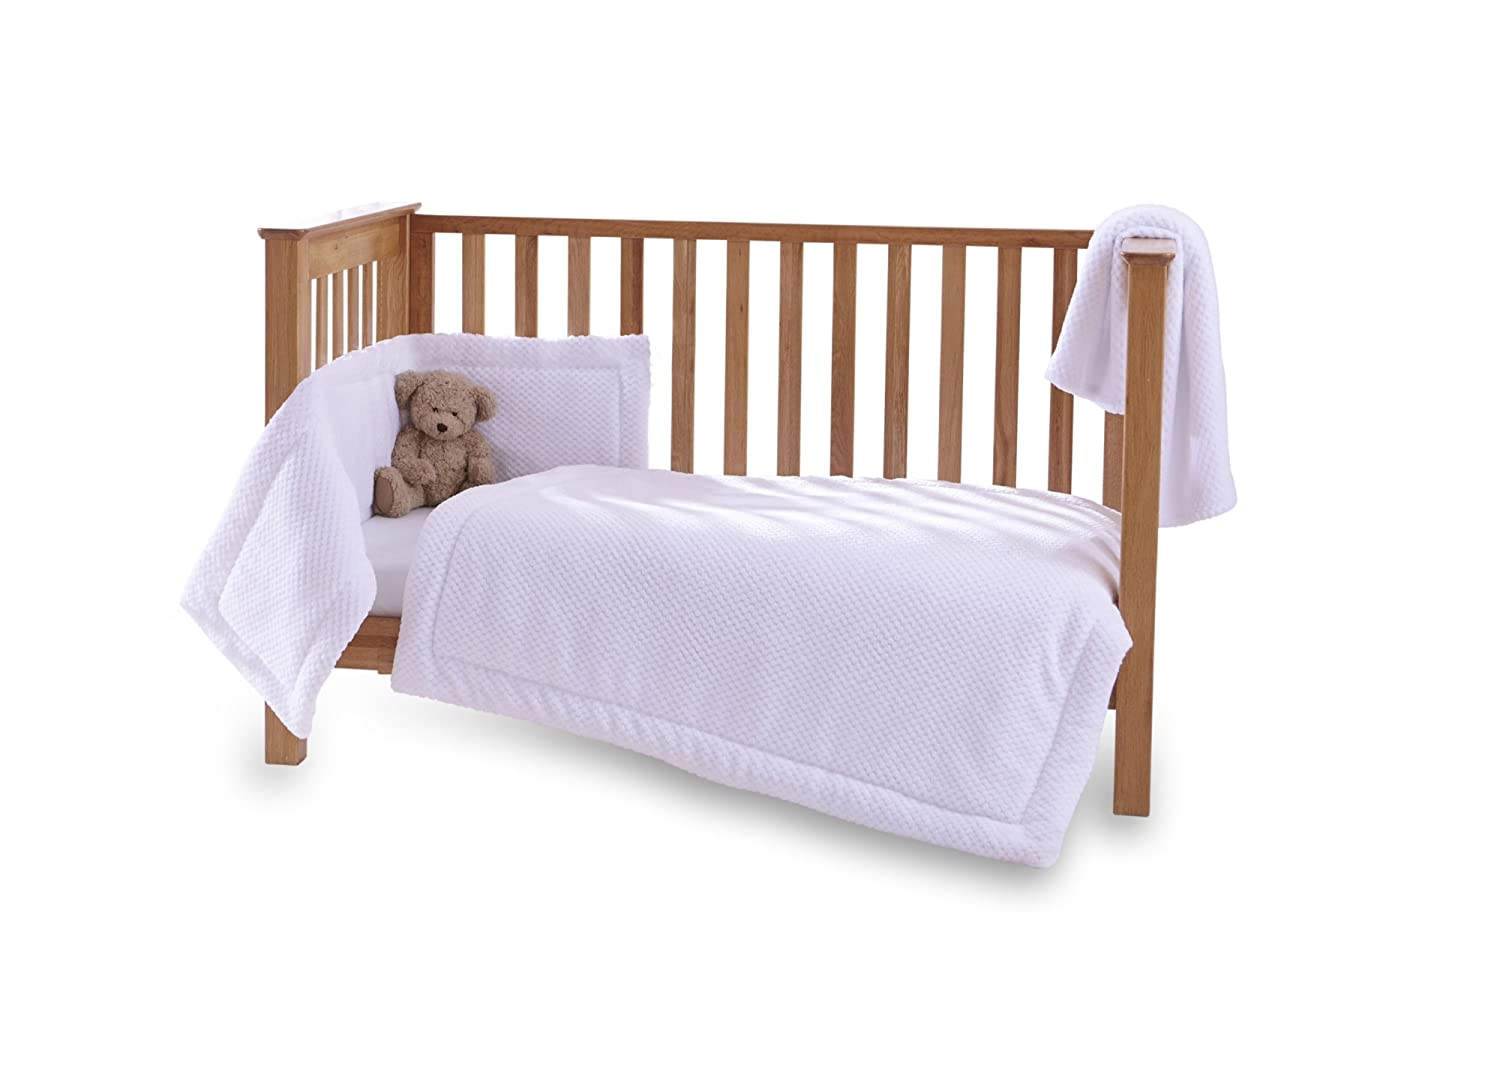 Clair de Lune Honeycomb 3 Piece Cot/Cot Bed Quilt & Bumper Bedding Set - White CL5136